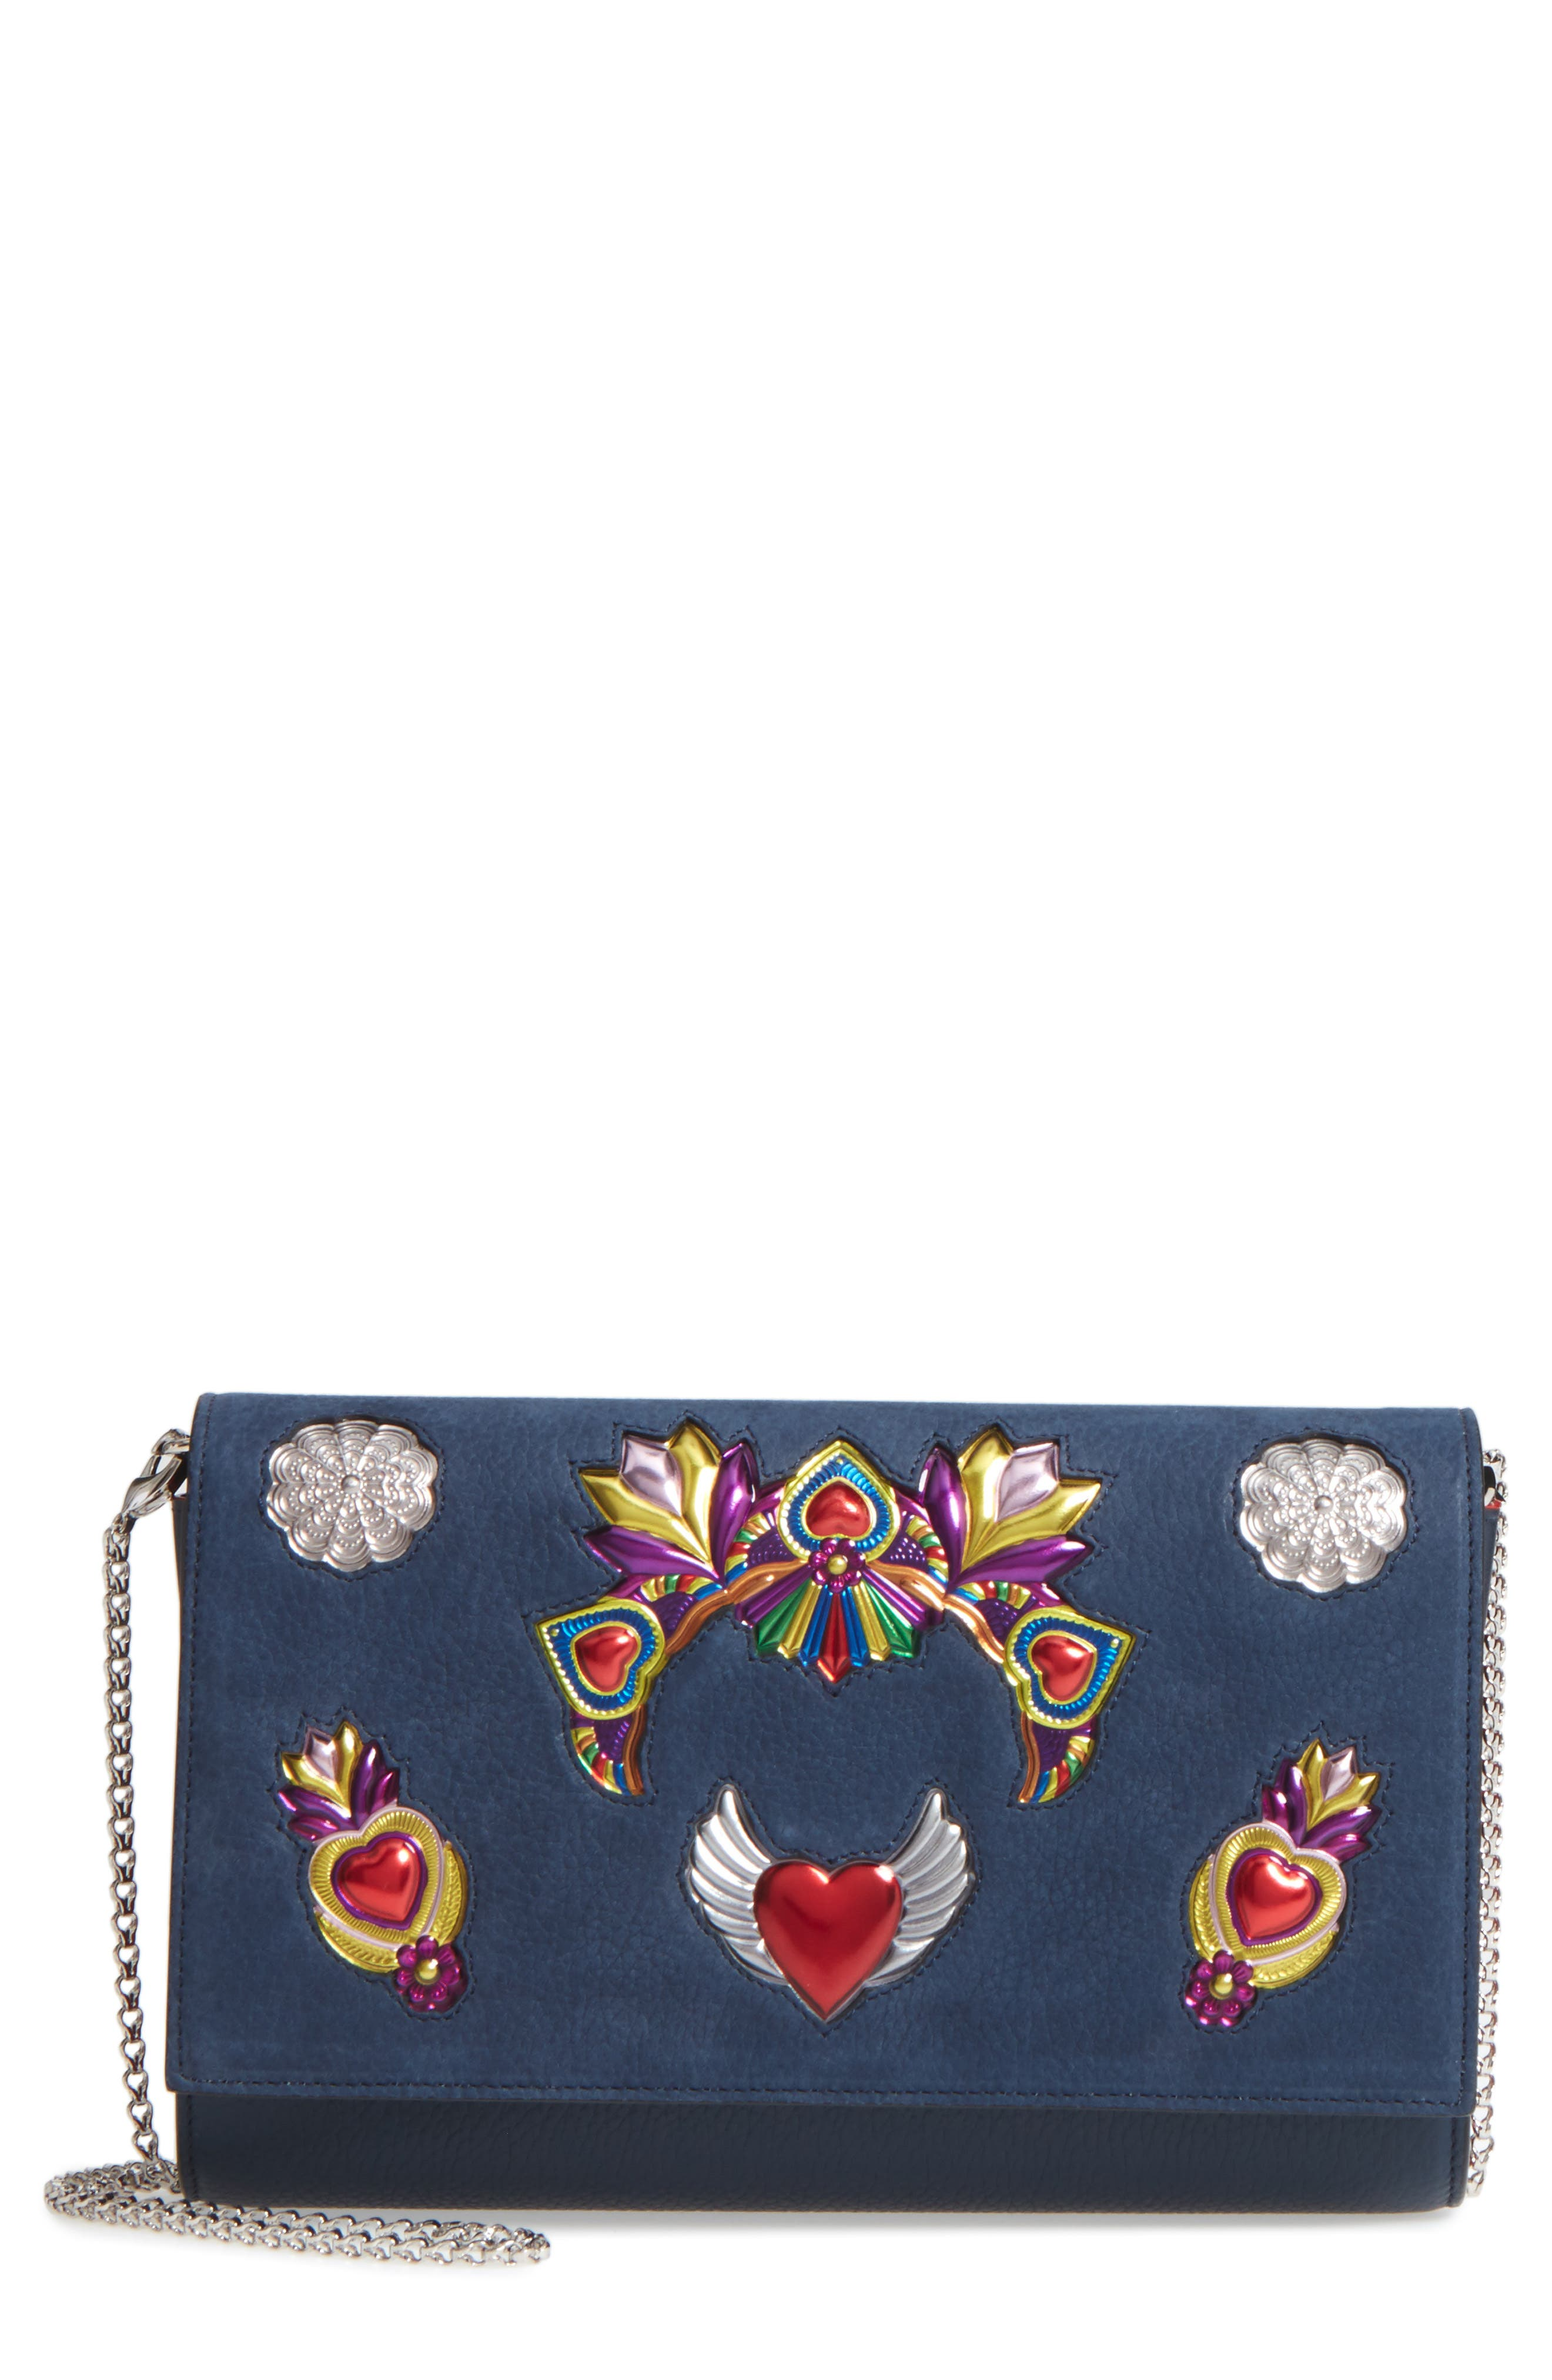 Christian Louboutin Mexiloubi Paloma Leather Clutch